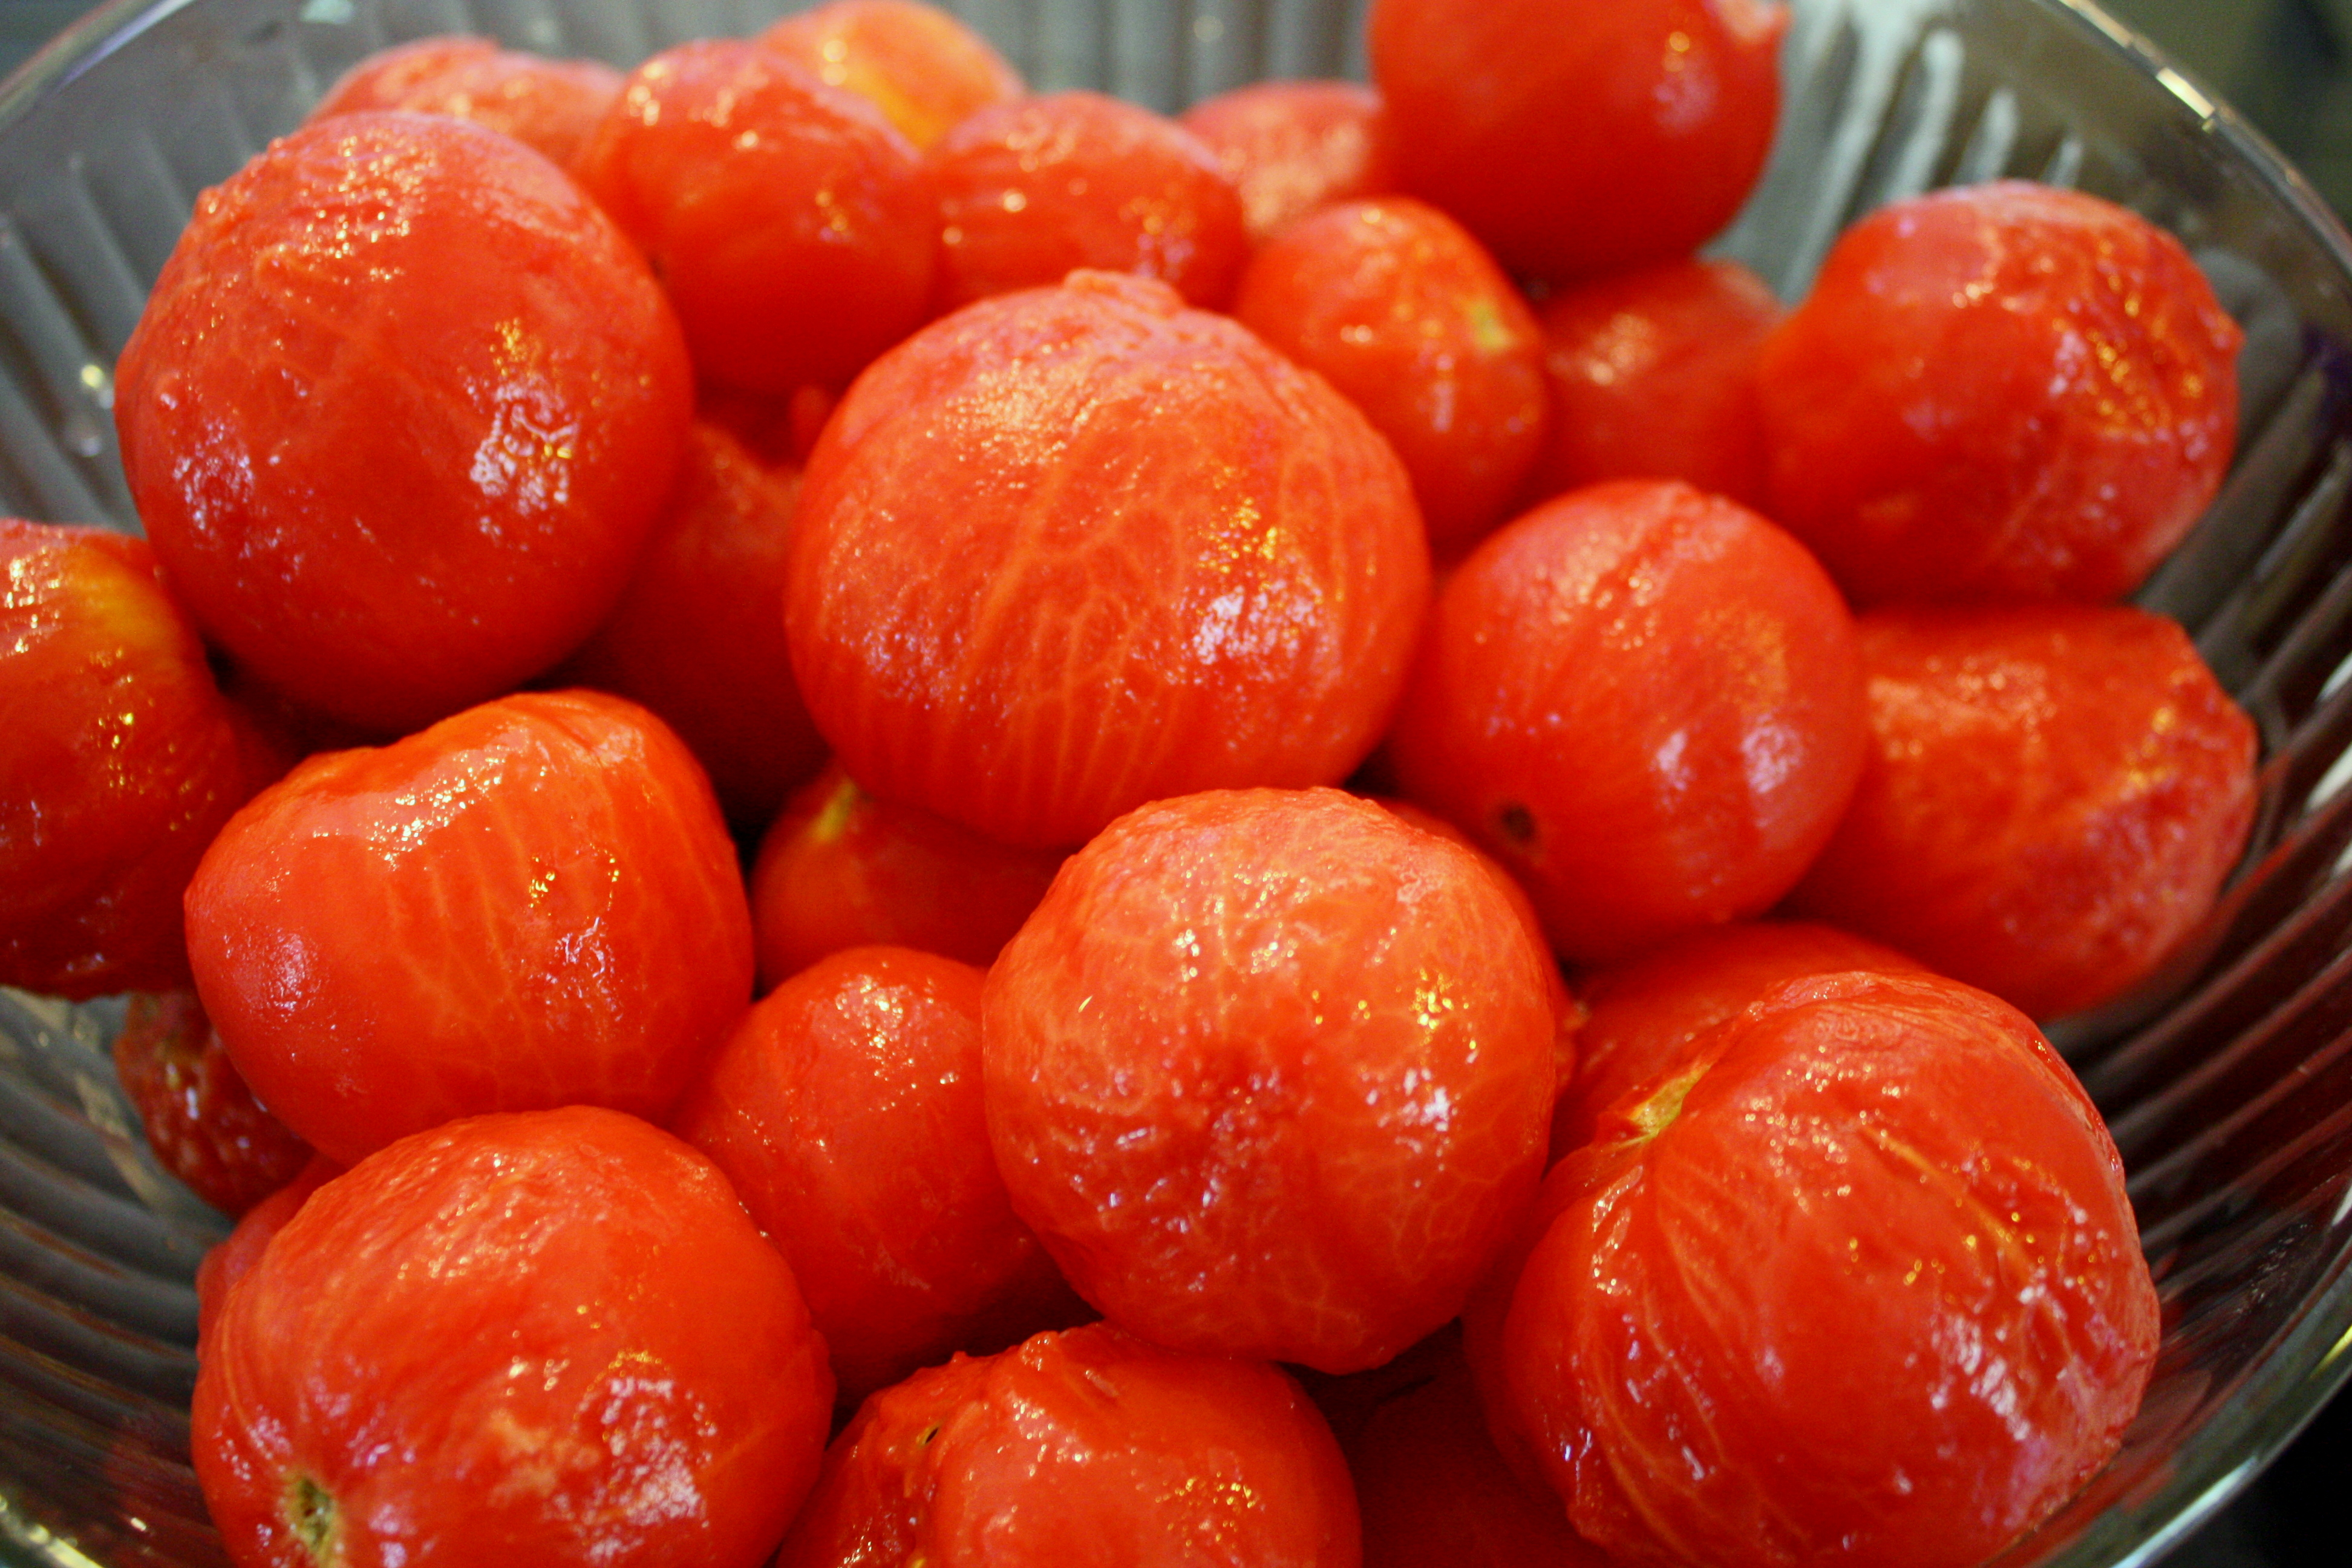 How to Skin Tomatoes